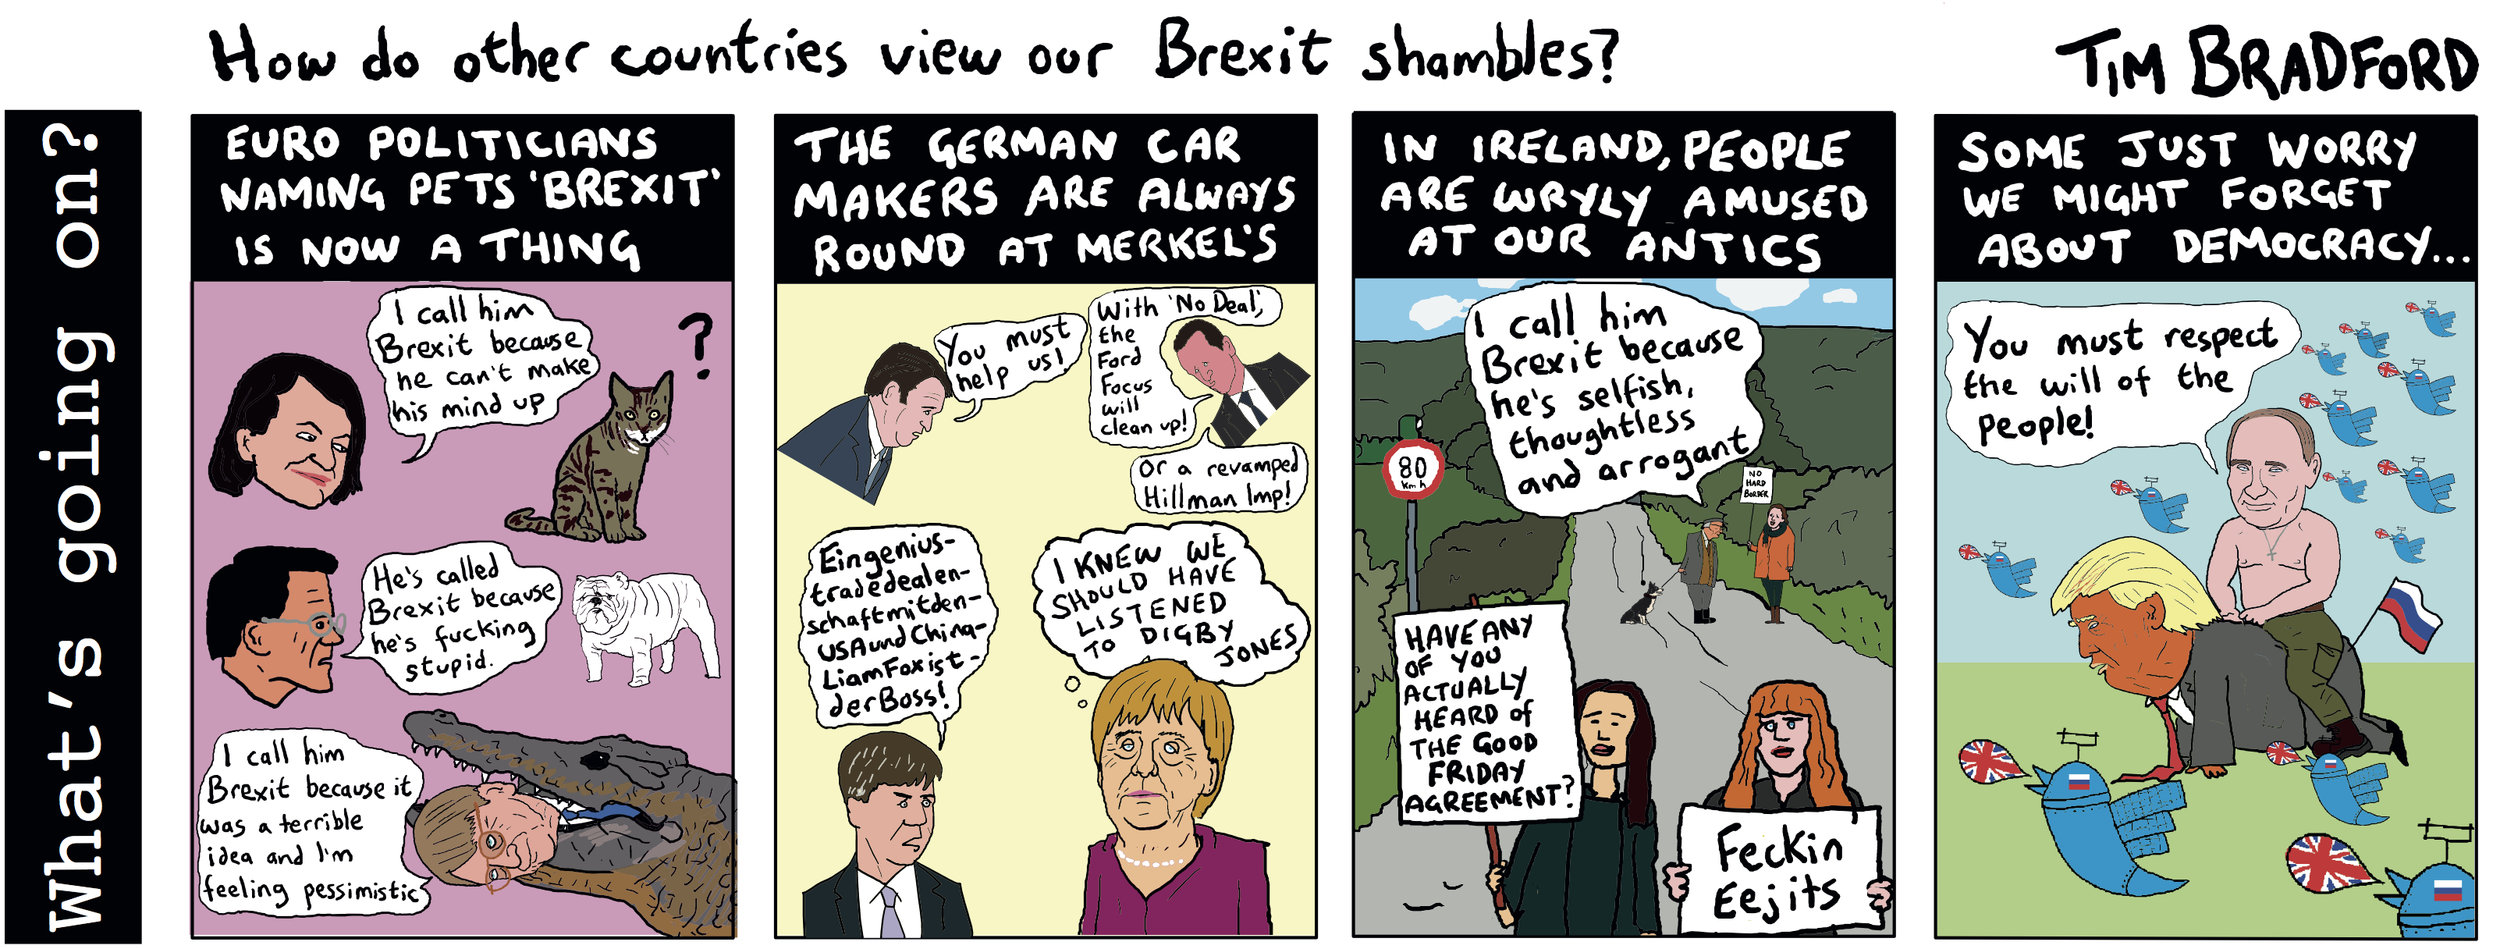 How do other countries view our Brexit shambles? - 19/03/2019